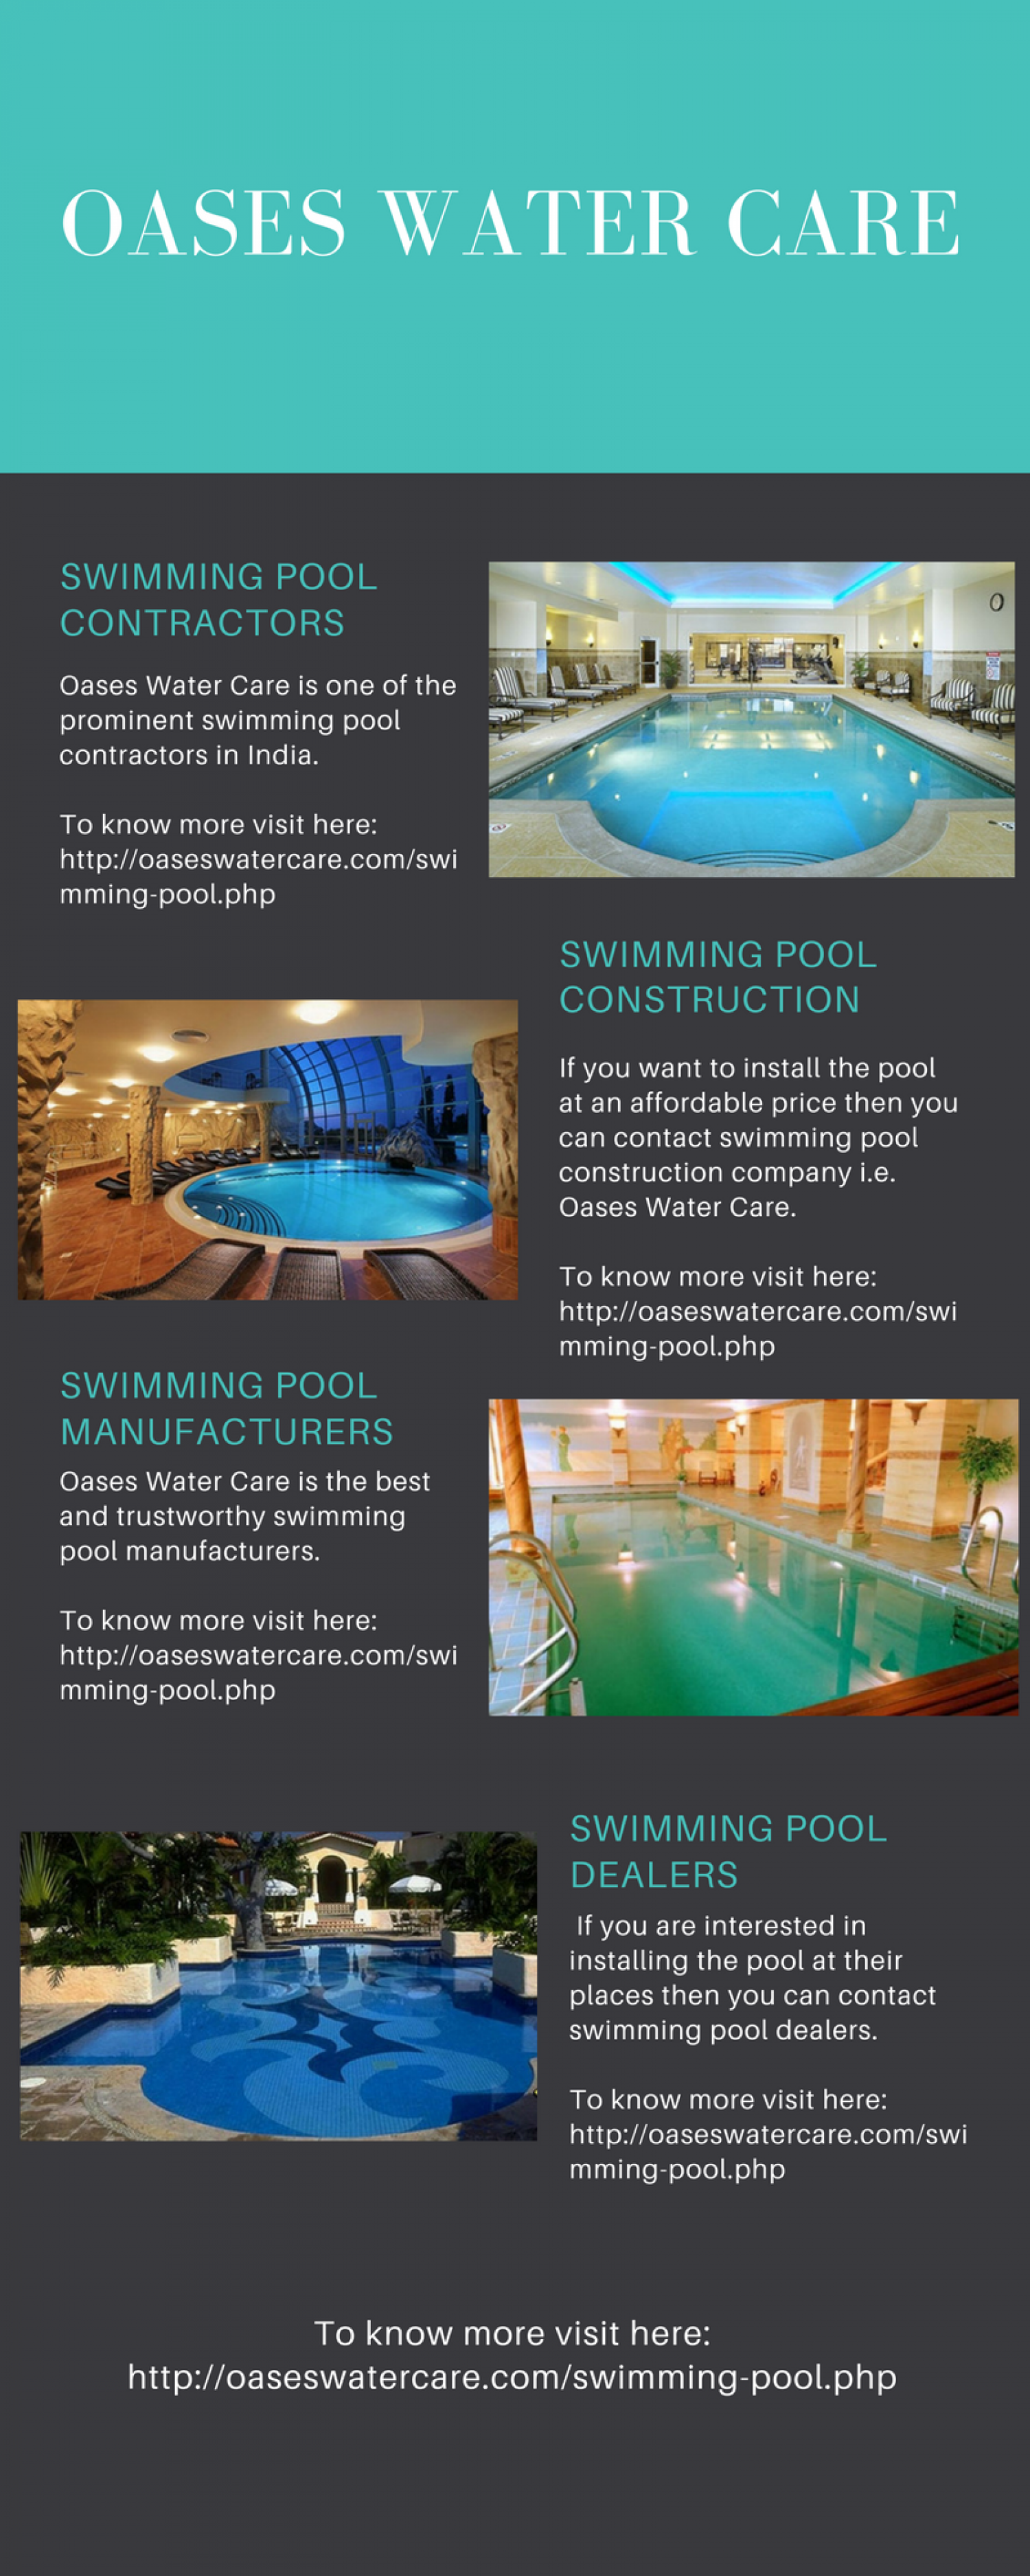 Swimming Pool Dealers Infographic